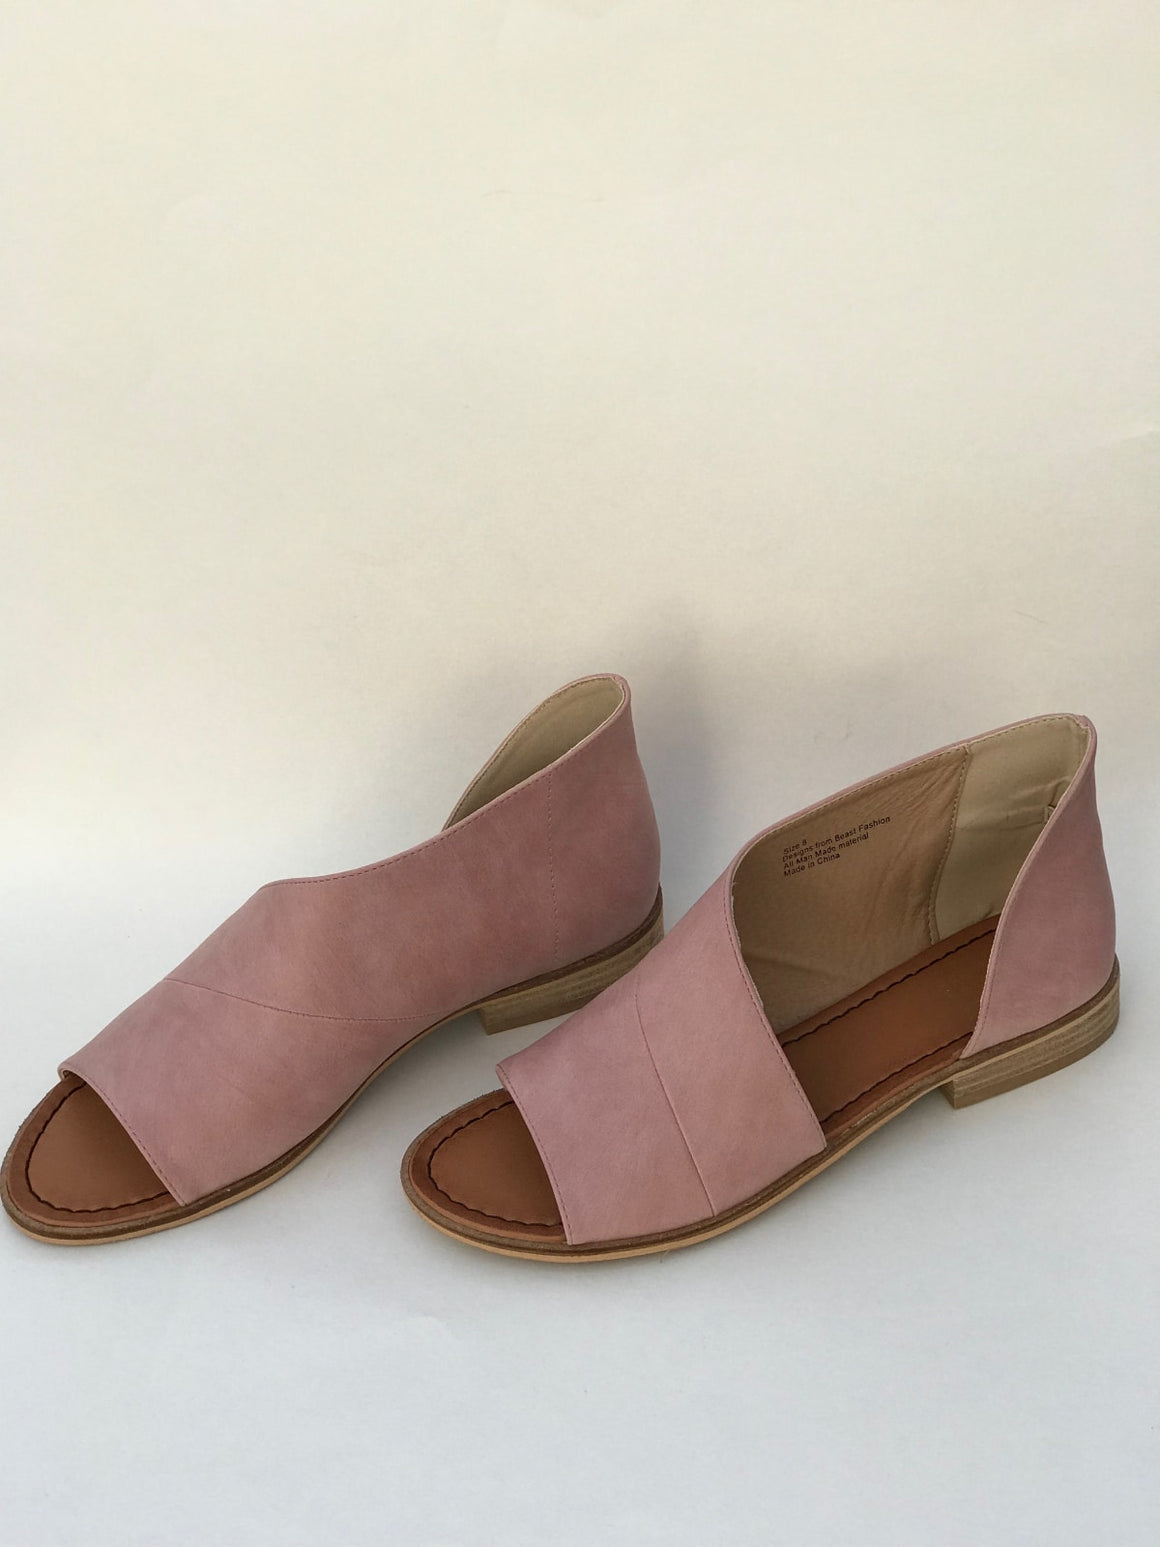 Lotus Shoe In Blush - Shoes